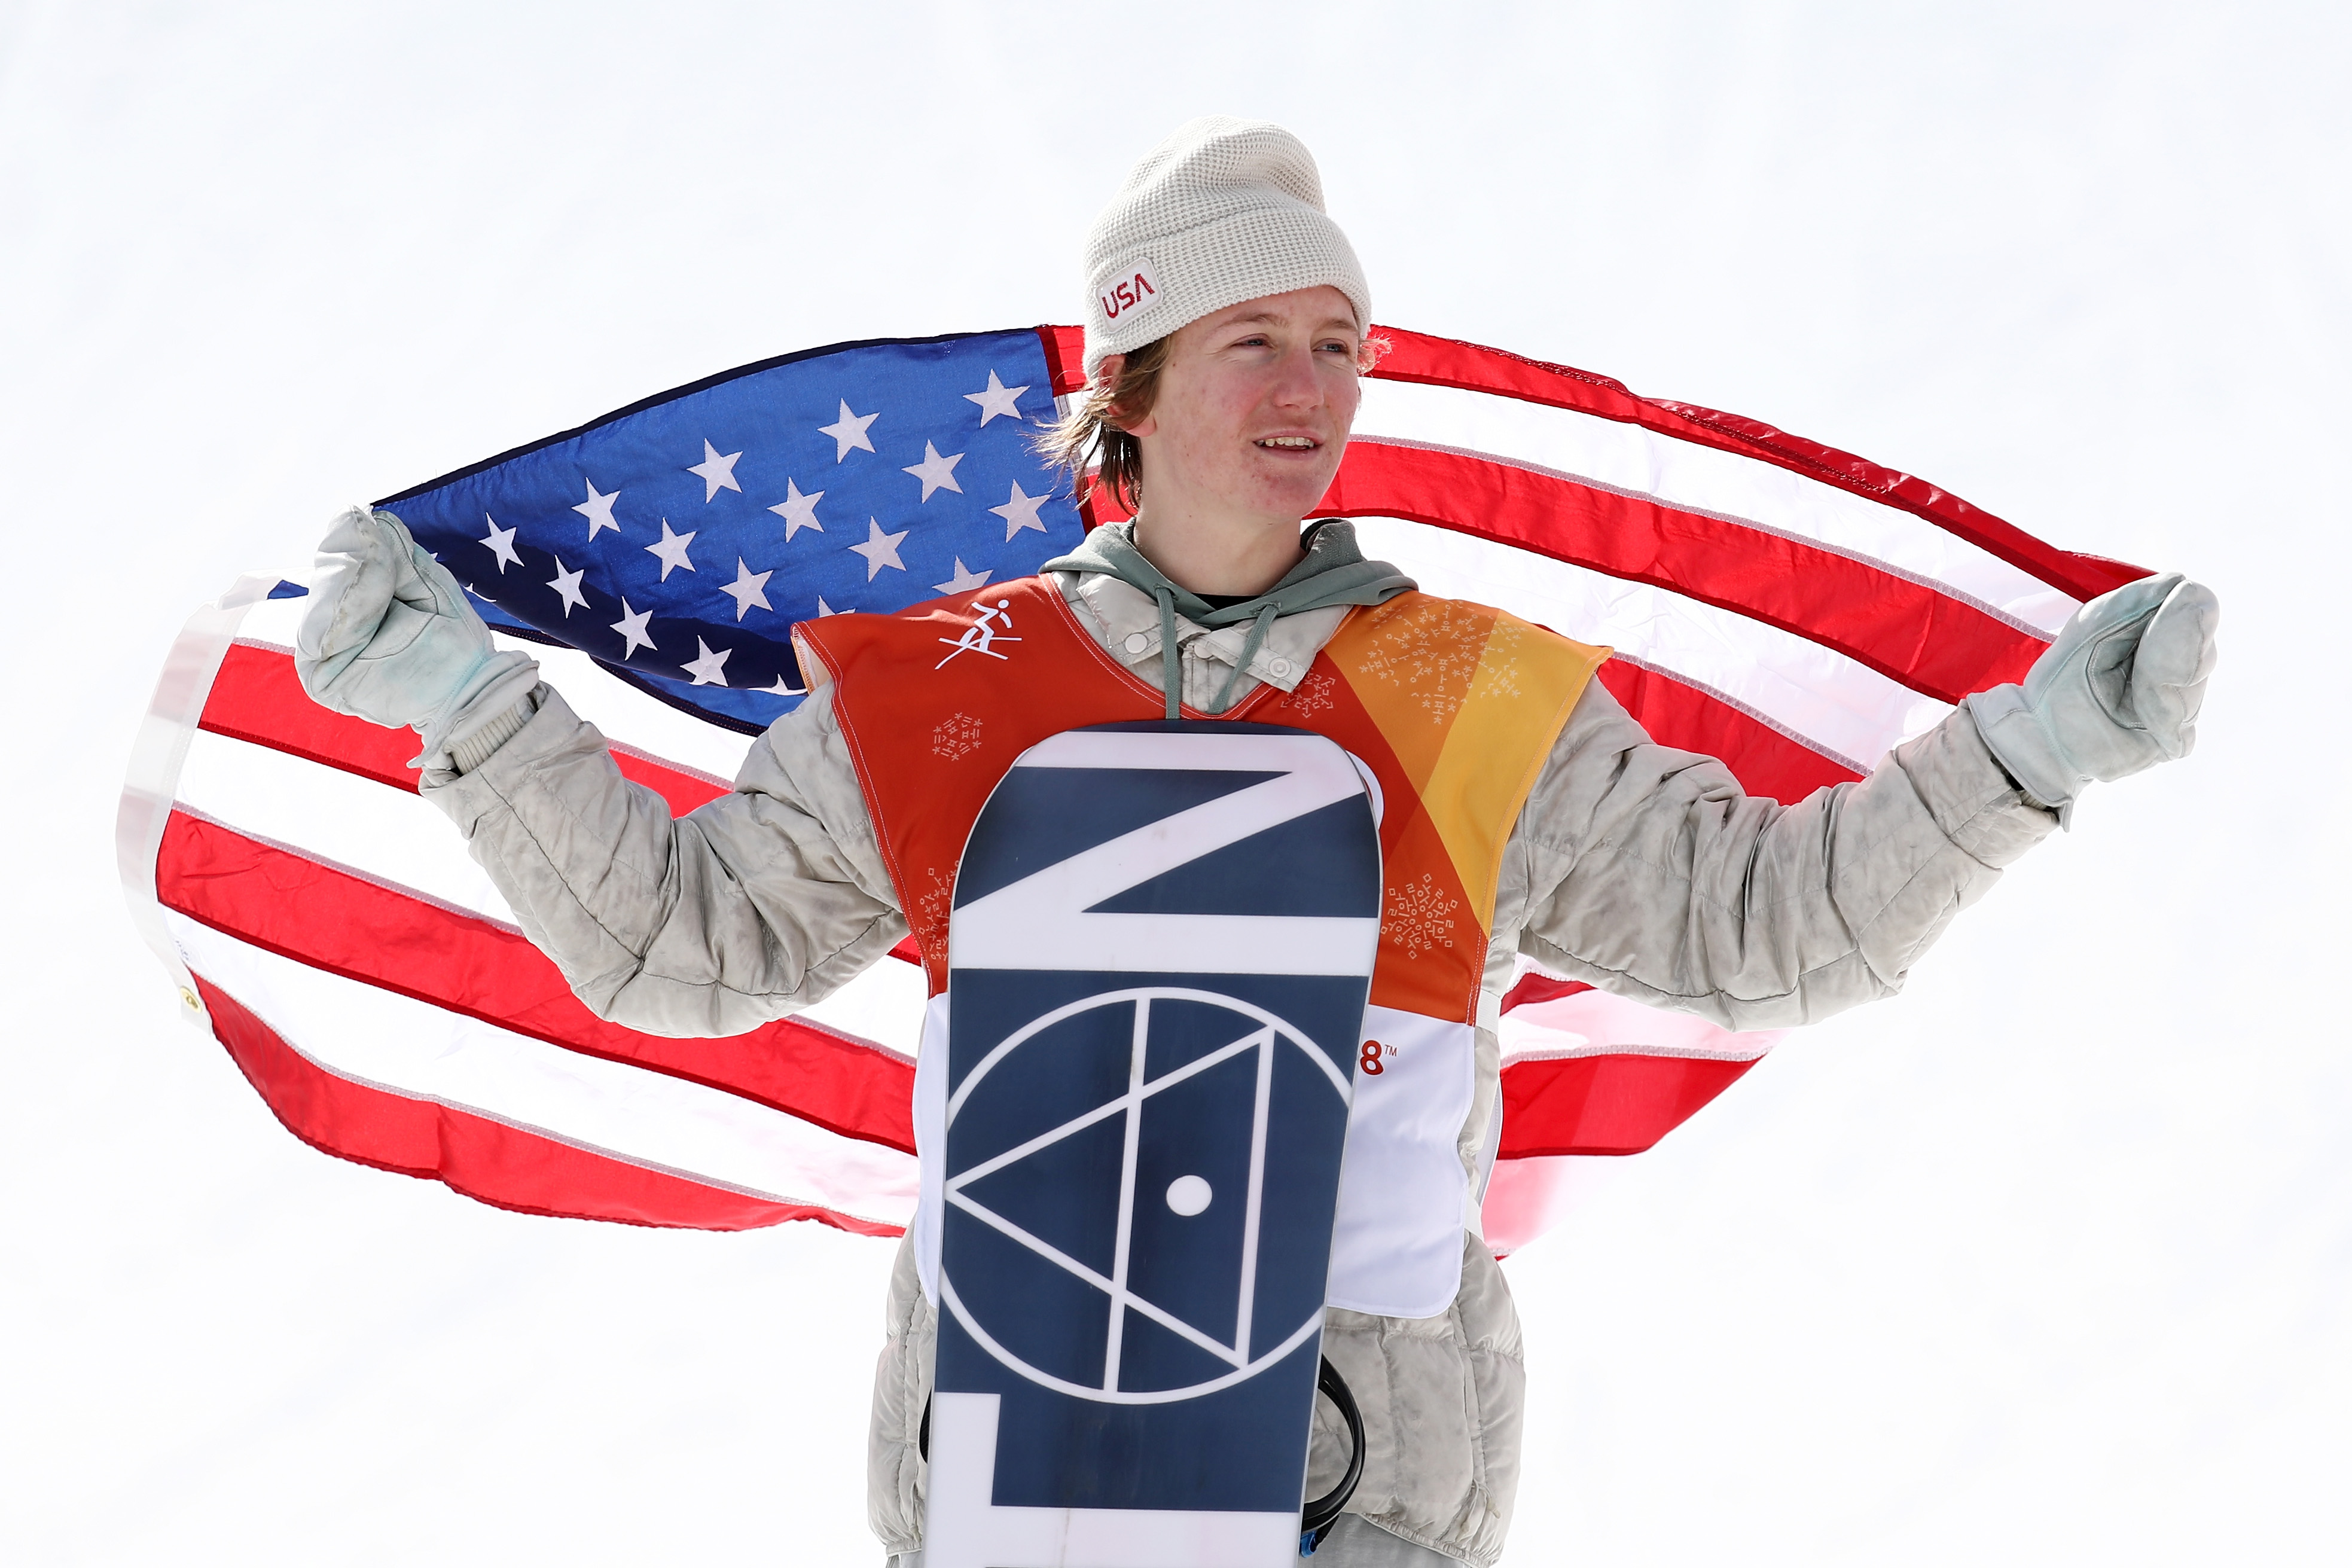 2018-Winter-Olympics-Snowboarder-Red-Gerard-Wins-Team-USAs-First-Gold-Medal-At-17